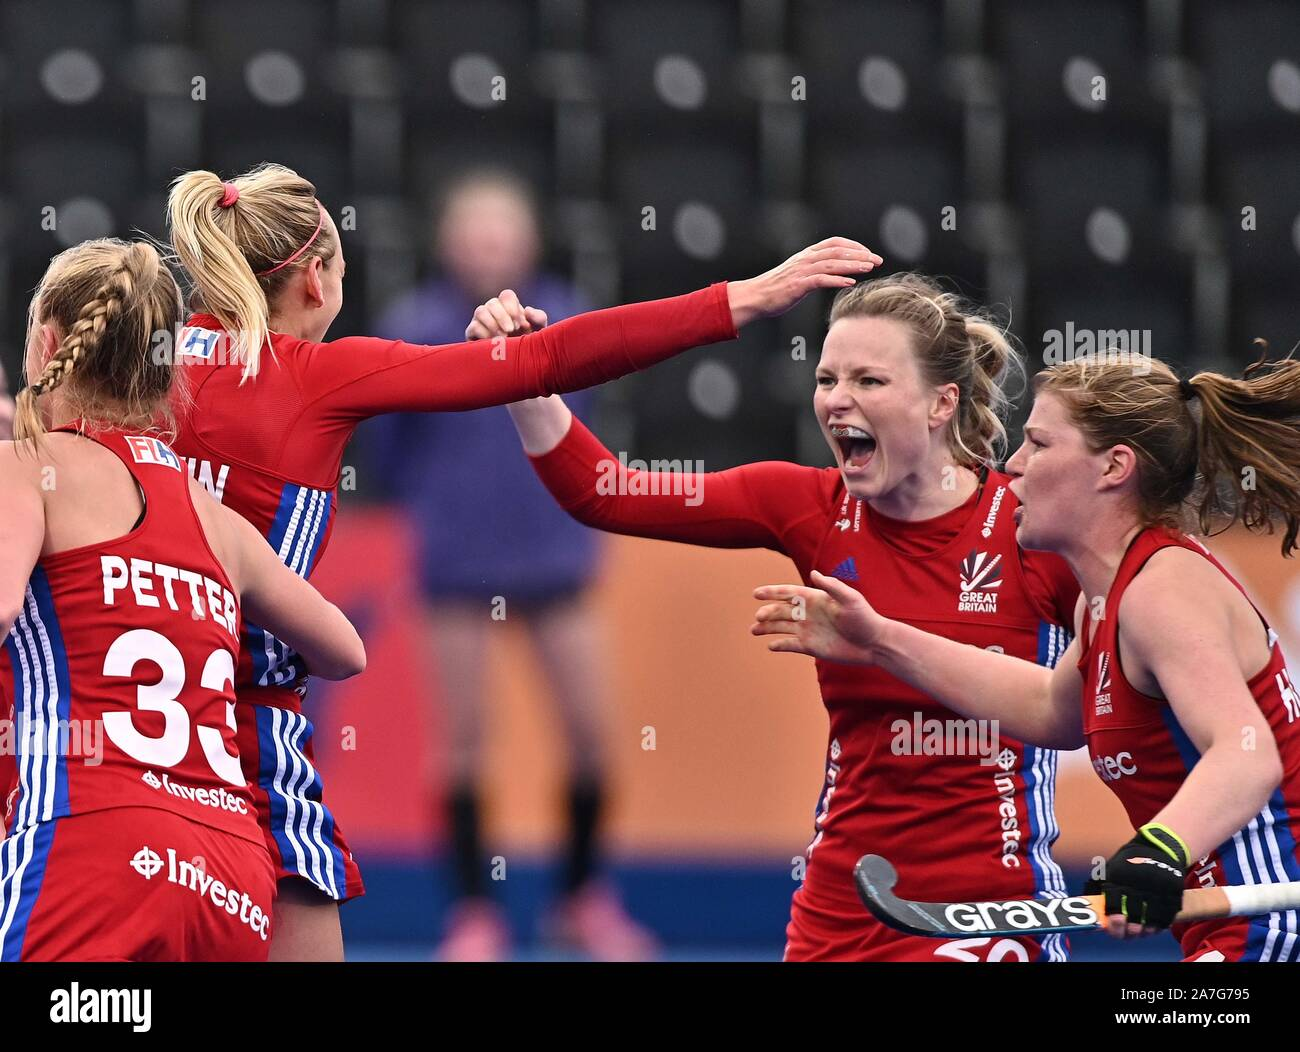 Stratford. United Kingdom. 02 November 2019. The Great Britain players celebrate their second goal. Izzy Petter (Great Britain, 33), Hollie Pearne-Webb (Great Britain, captain, 20) and Tess Howard (Great Britain). Great Britain v Chile. FIH Womens Olympic hockey qualifier. Lee Valley hockey and tennis centre. Stratford. London. United Kingdom. Credit Garry Bowden/Sport in Pictures. Credit: Sport In Pictures/Alamy Live News Stock Photo